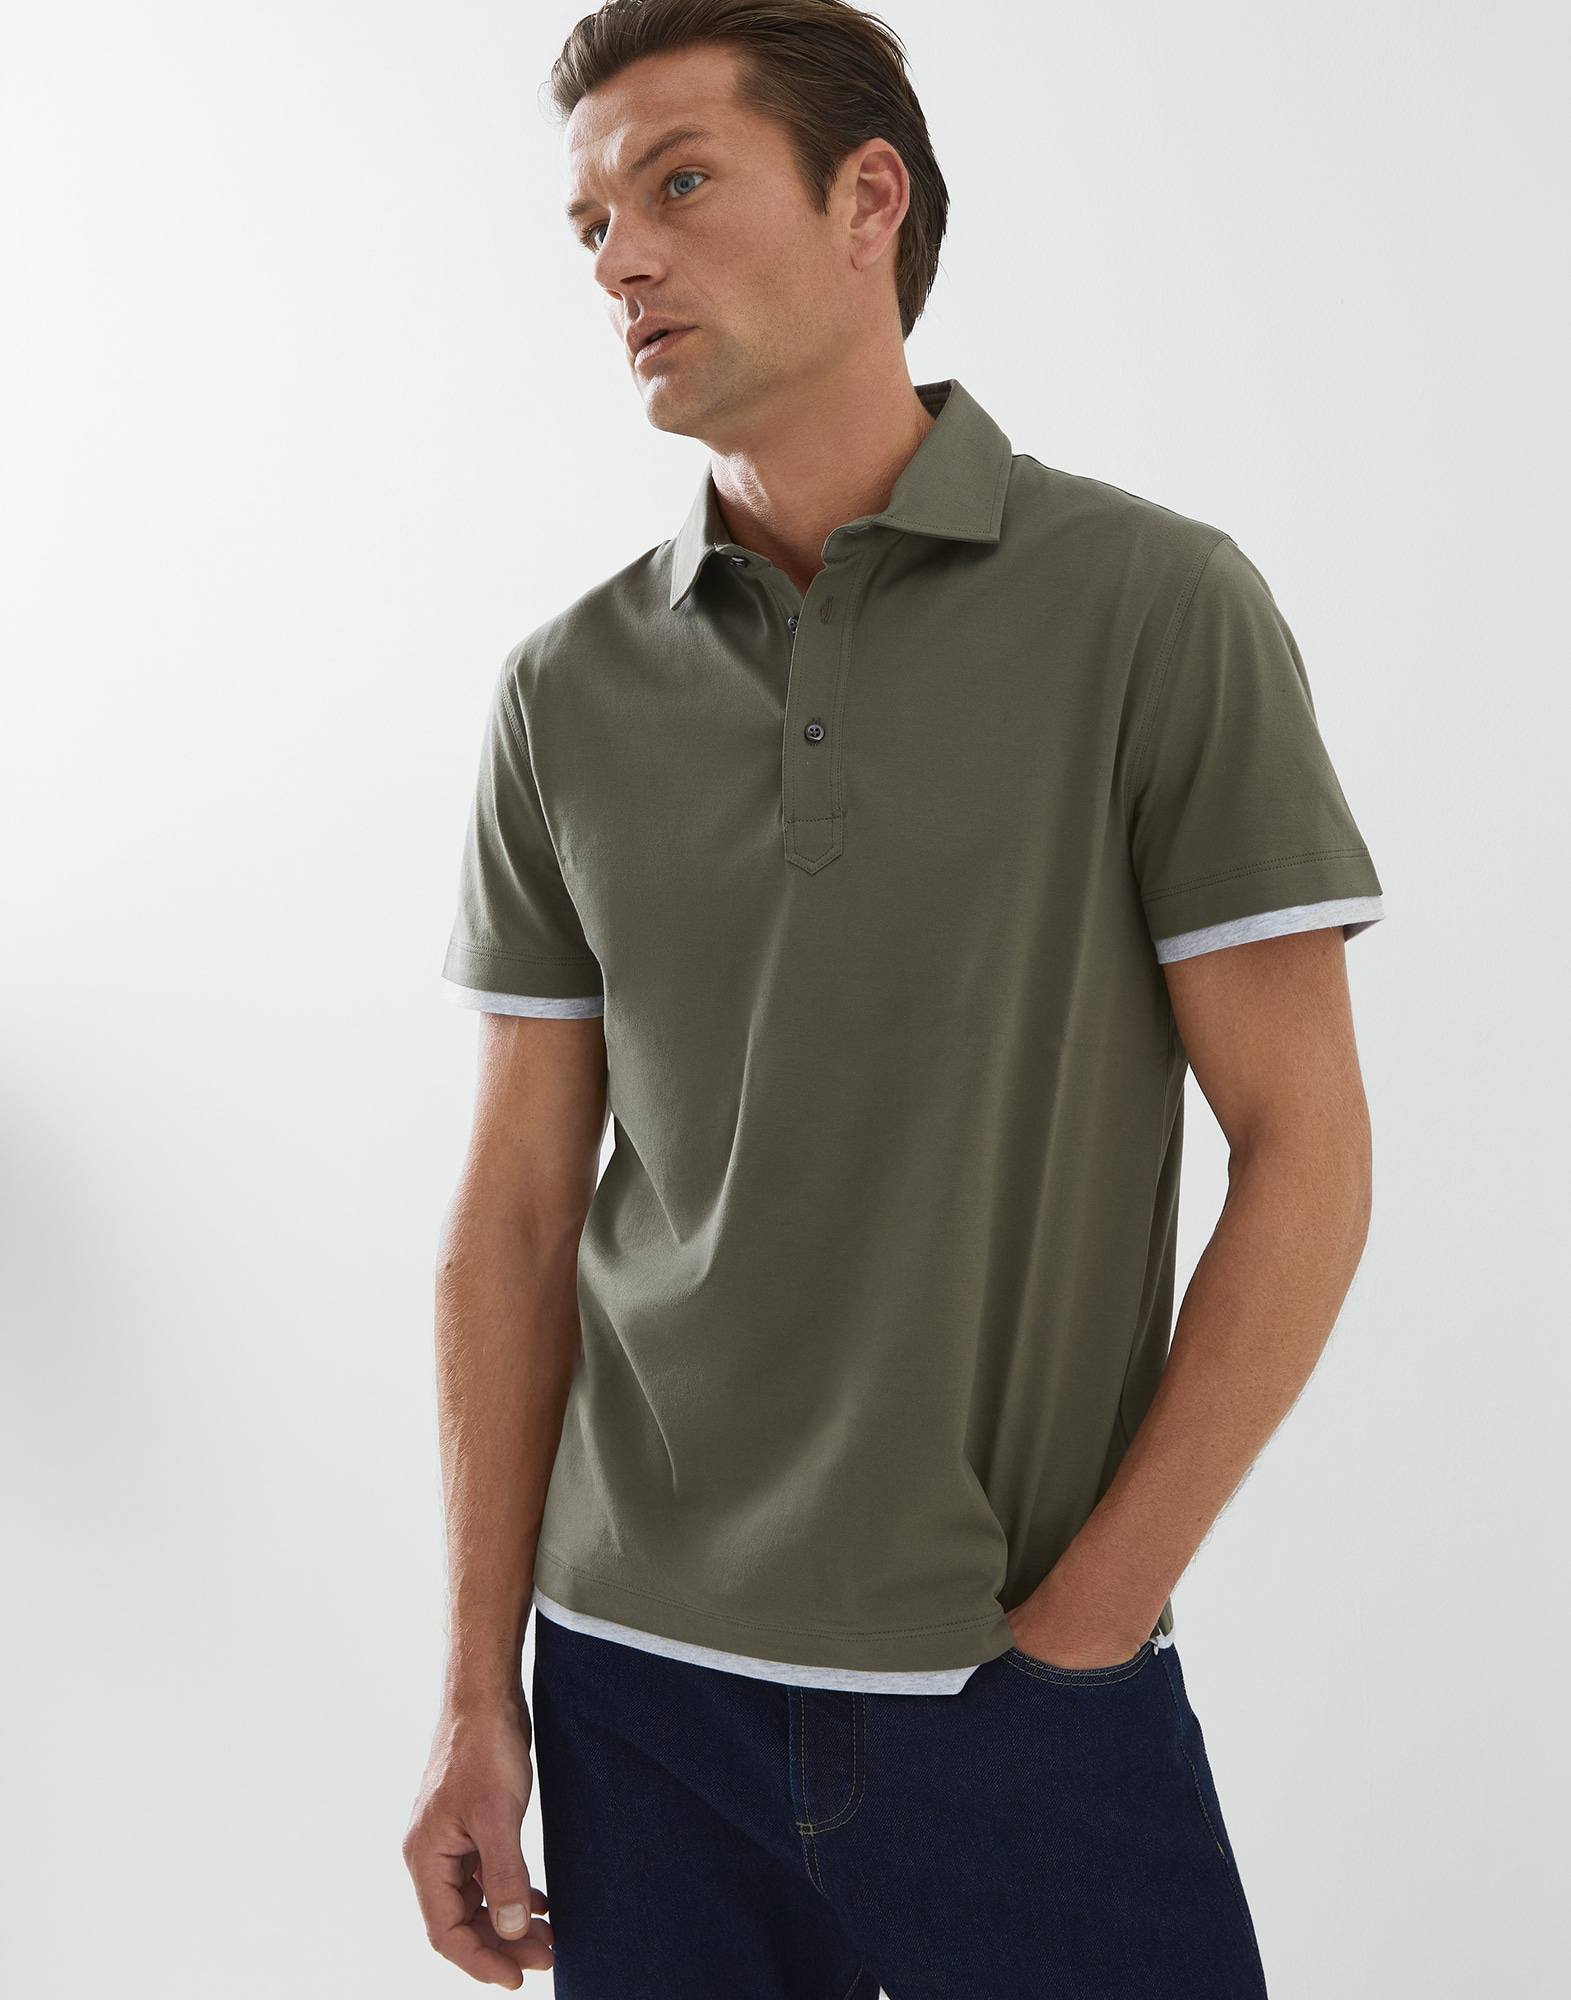 Polo - Front